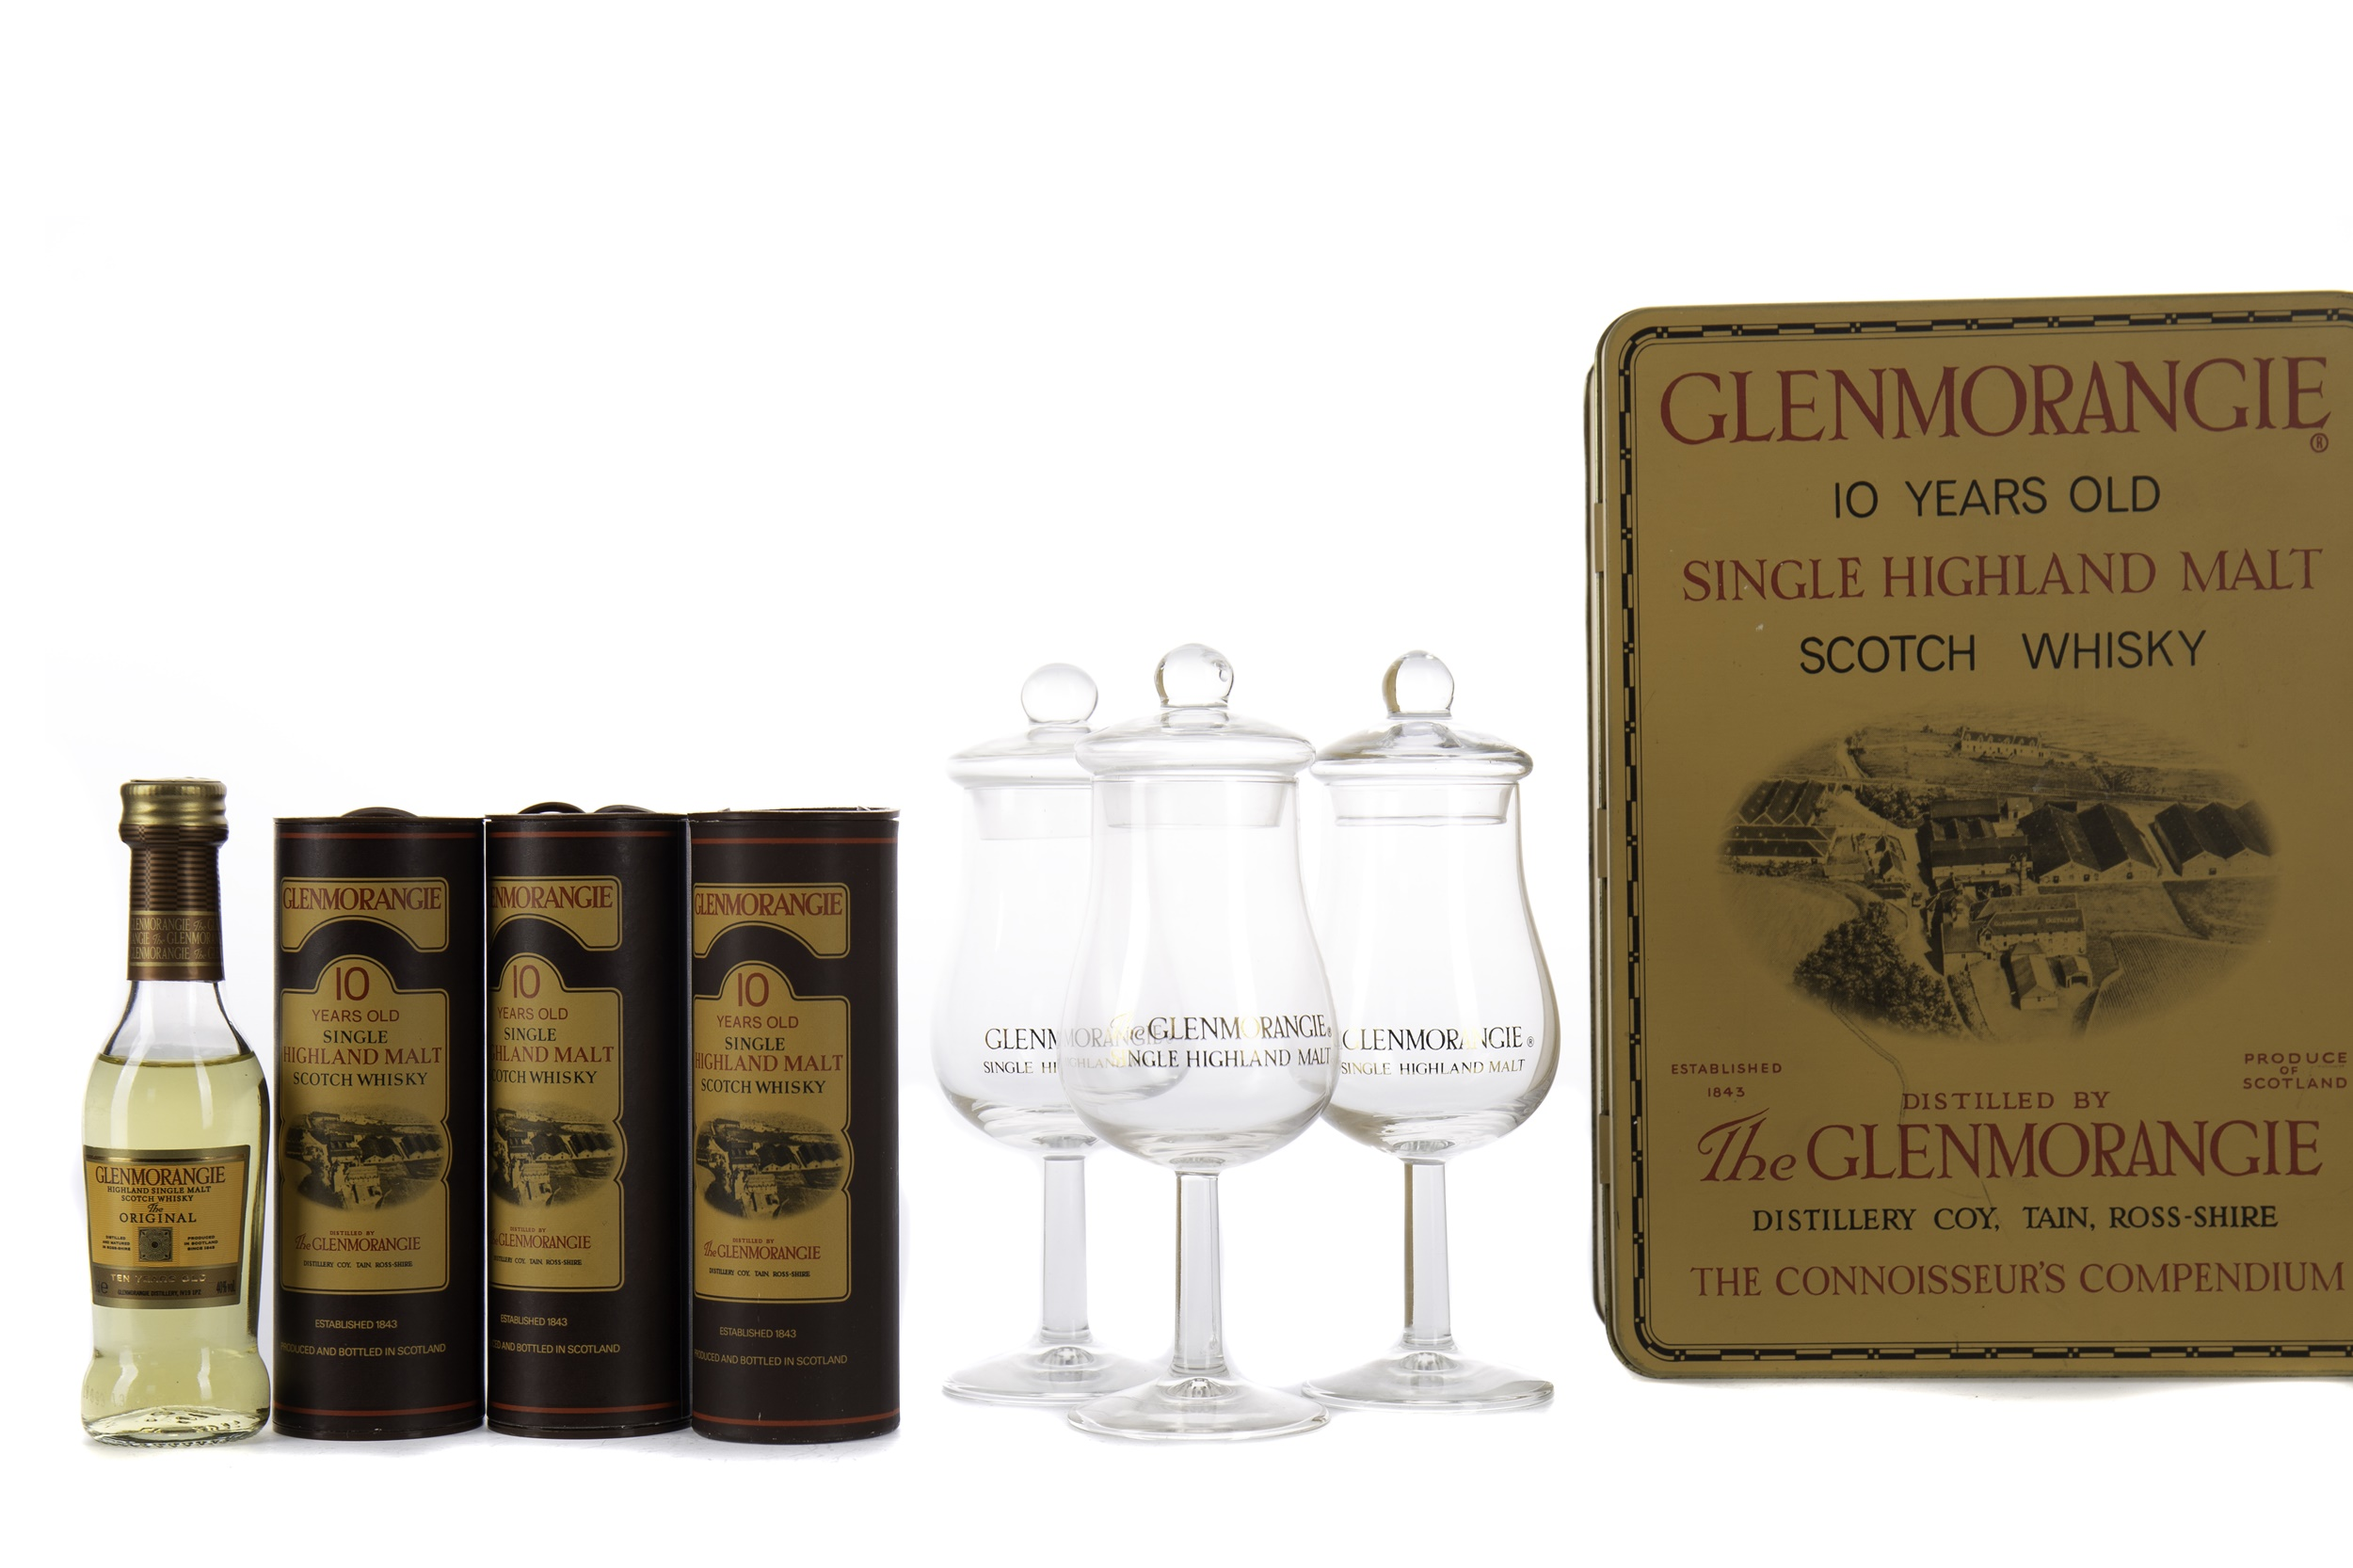 FOUR GLENMORANGIE 10 YEARS OLD MINIATURES AND FOUR GLENMORANGIE STEMMED GLASSES